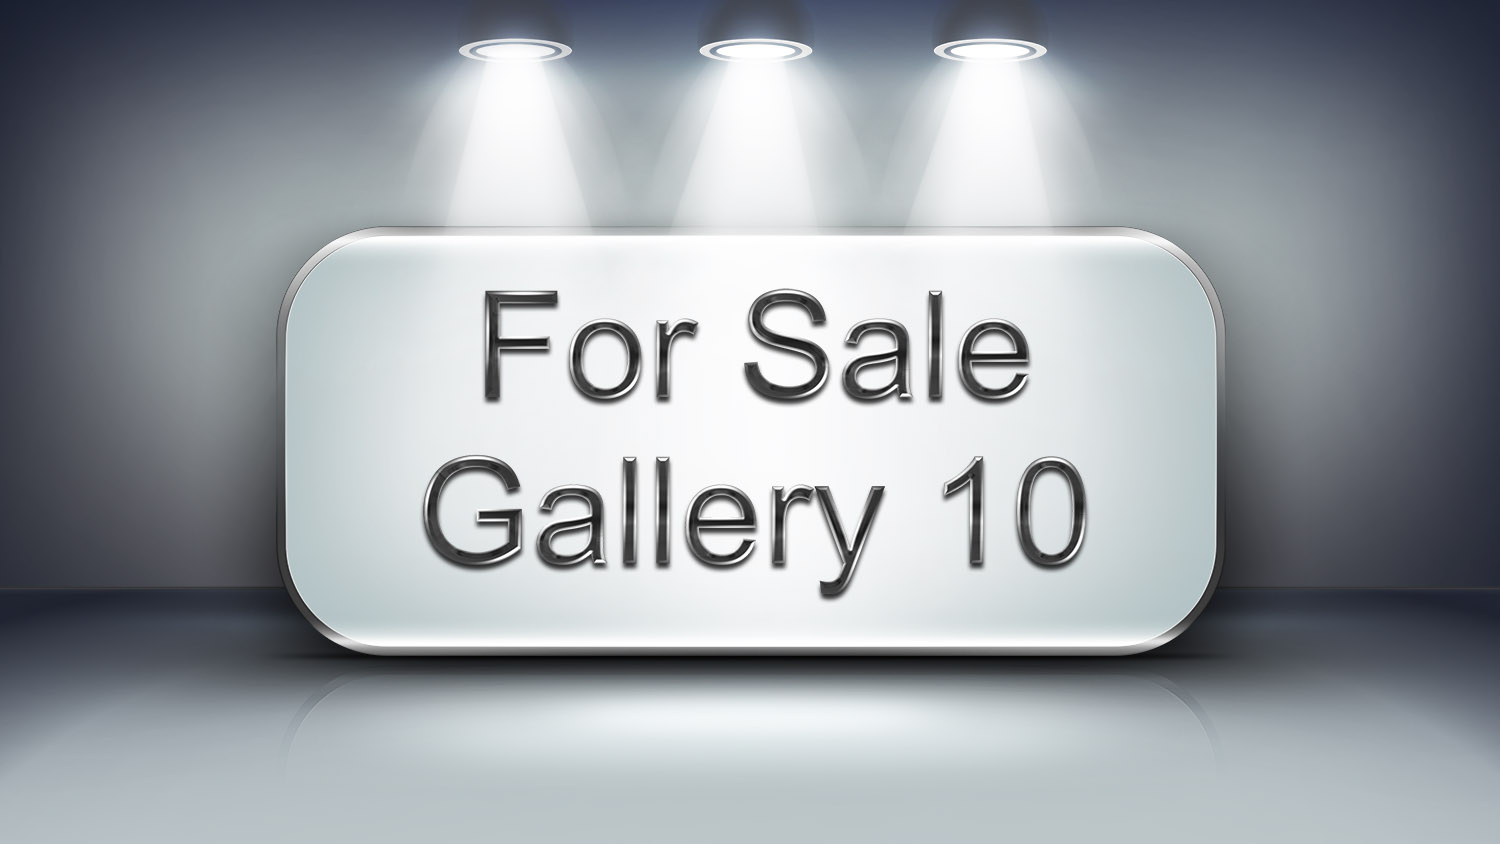 For Sale Gallery 10